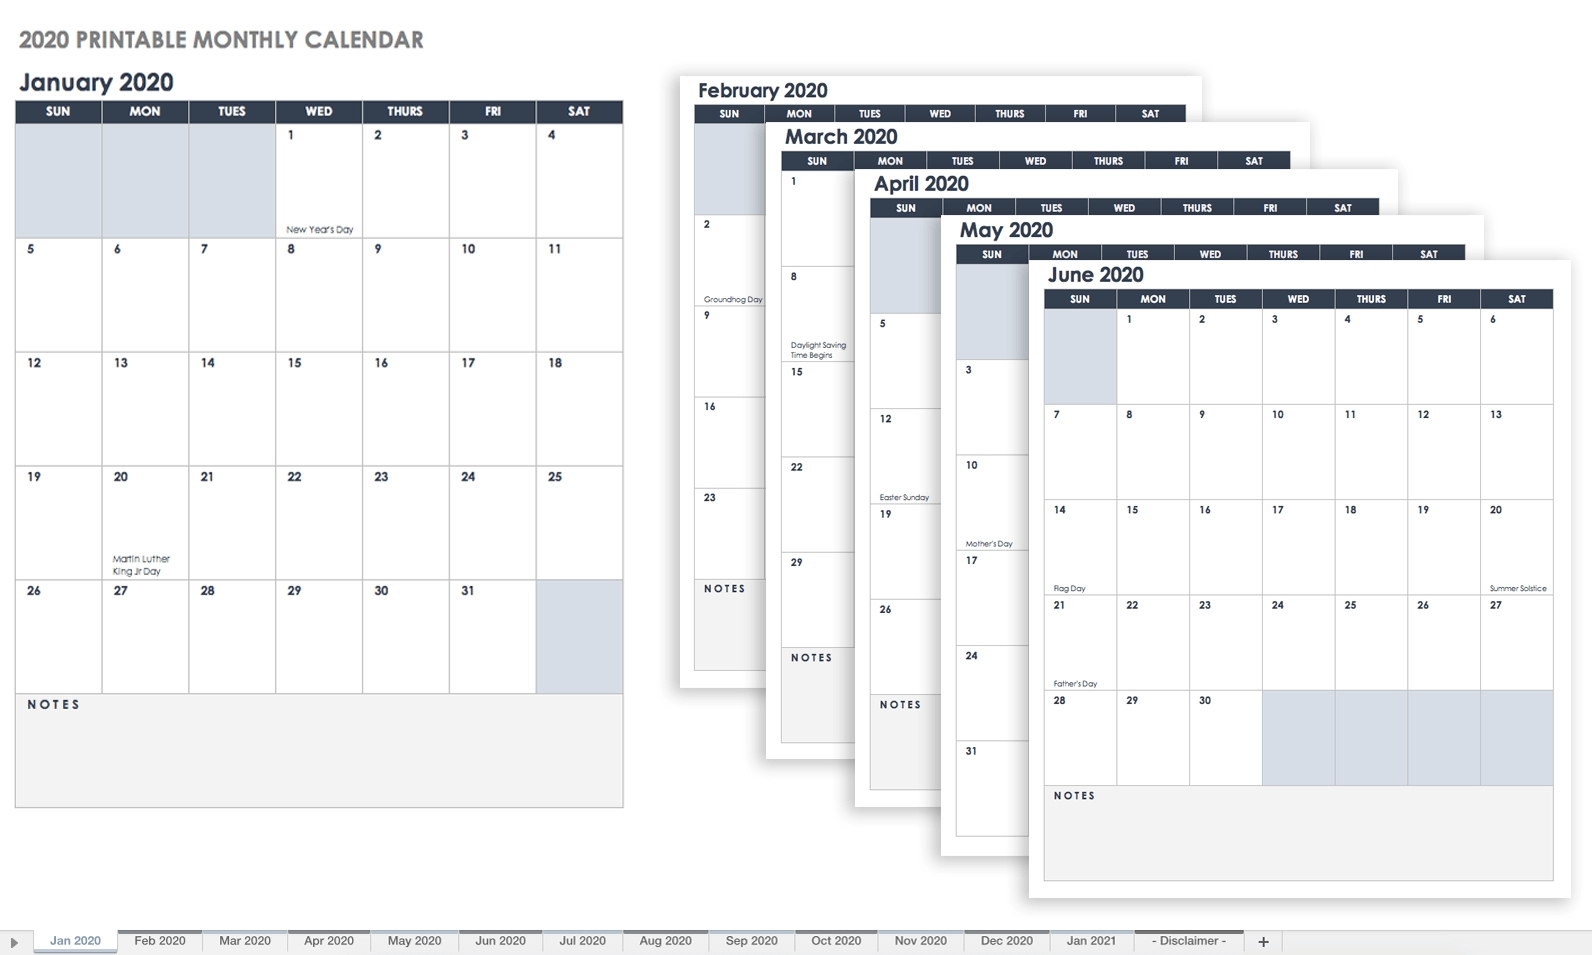 Free Blank Calendar Templates - Smartsheet throughout Blank Calendar With Only Weekdays